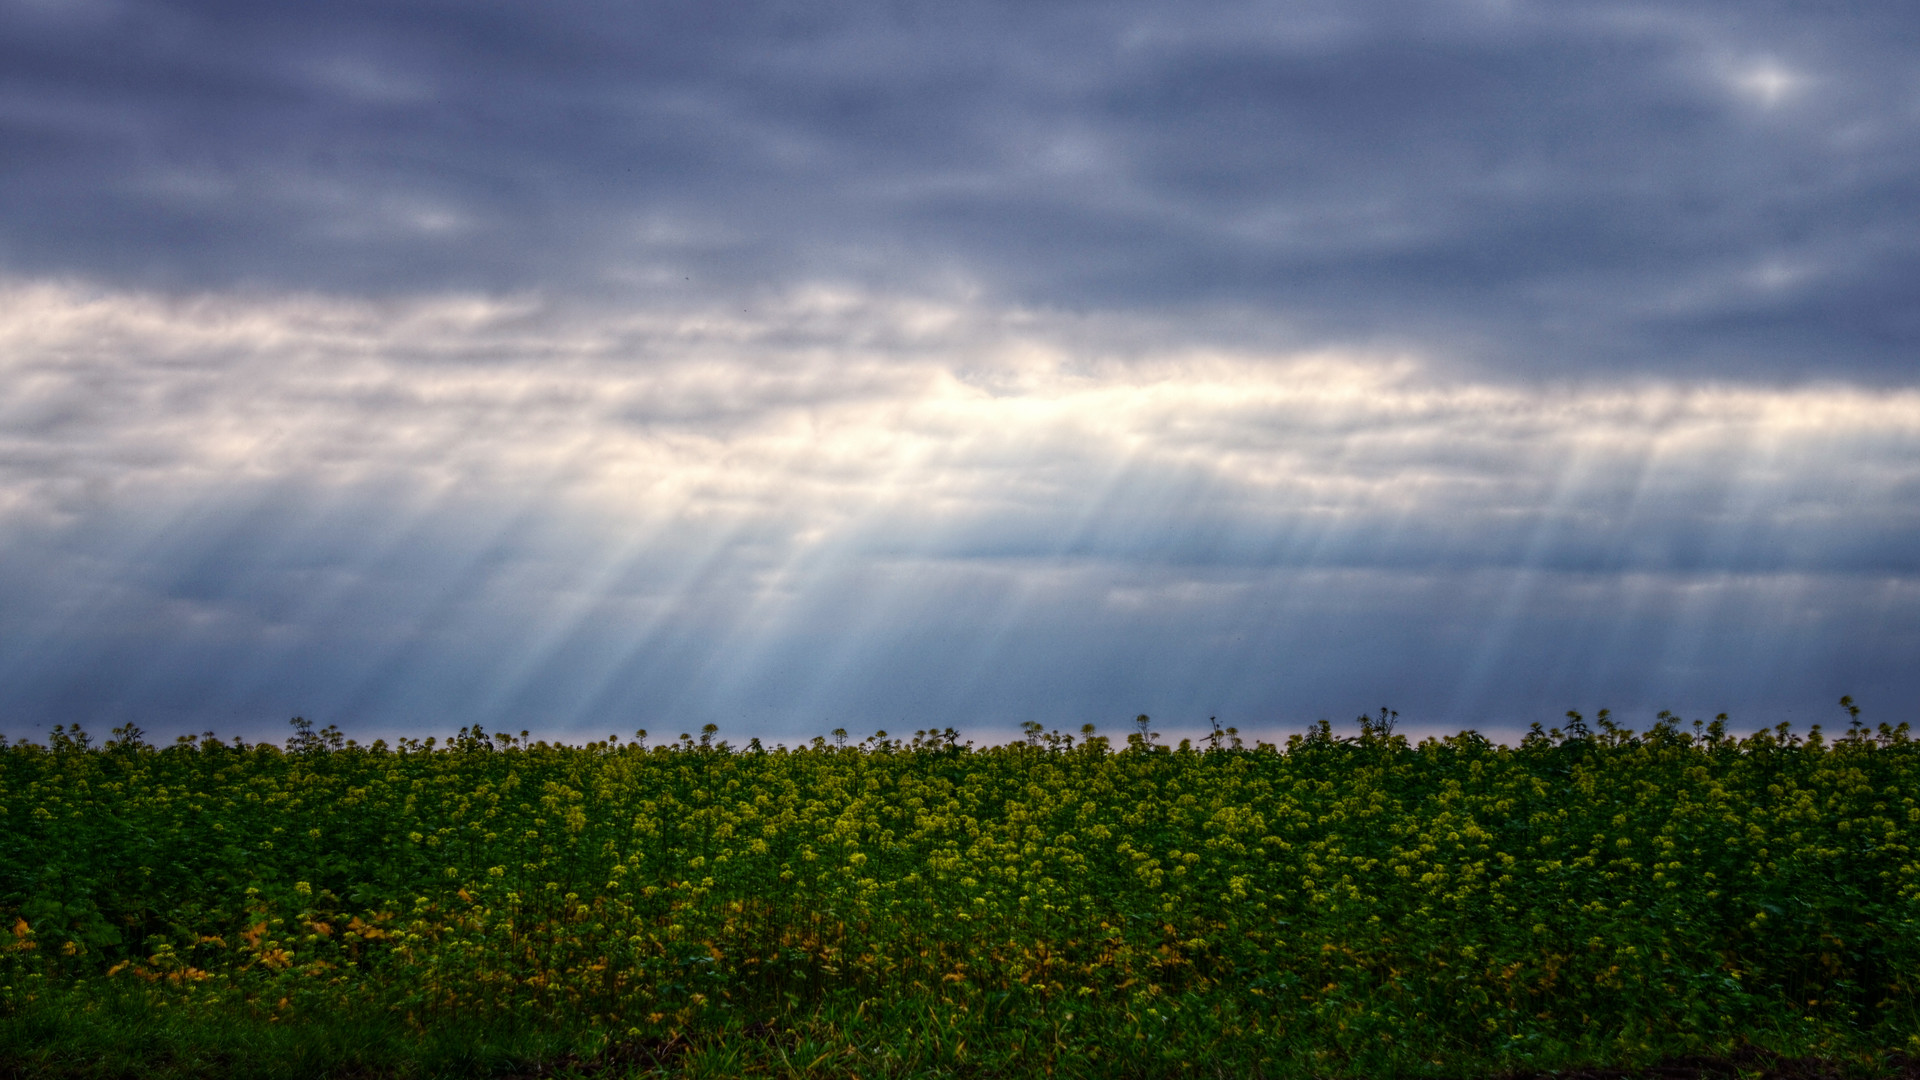 Res: 1920x1080, ... OliverBPhotography The Curtain Rises 16:9 Wallpaper 1080p by  OliverBPhotography